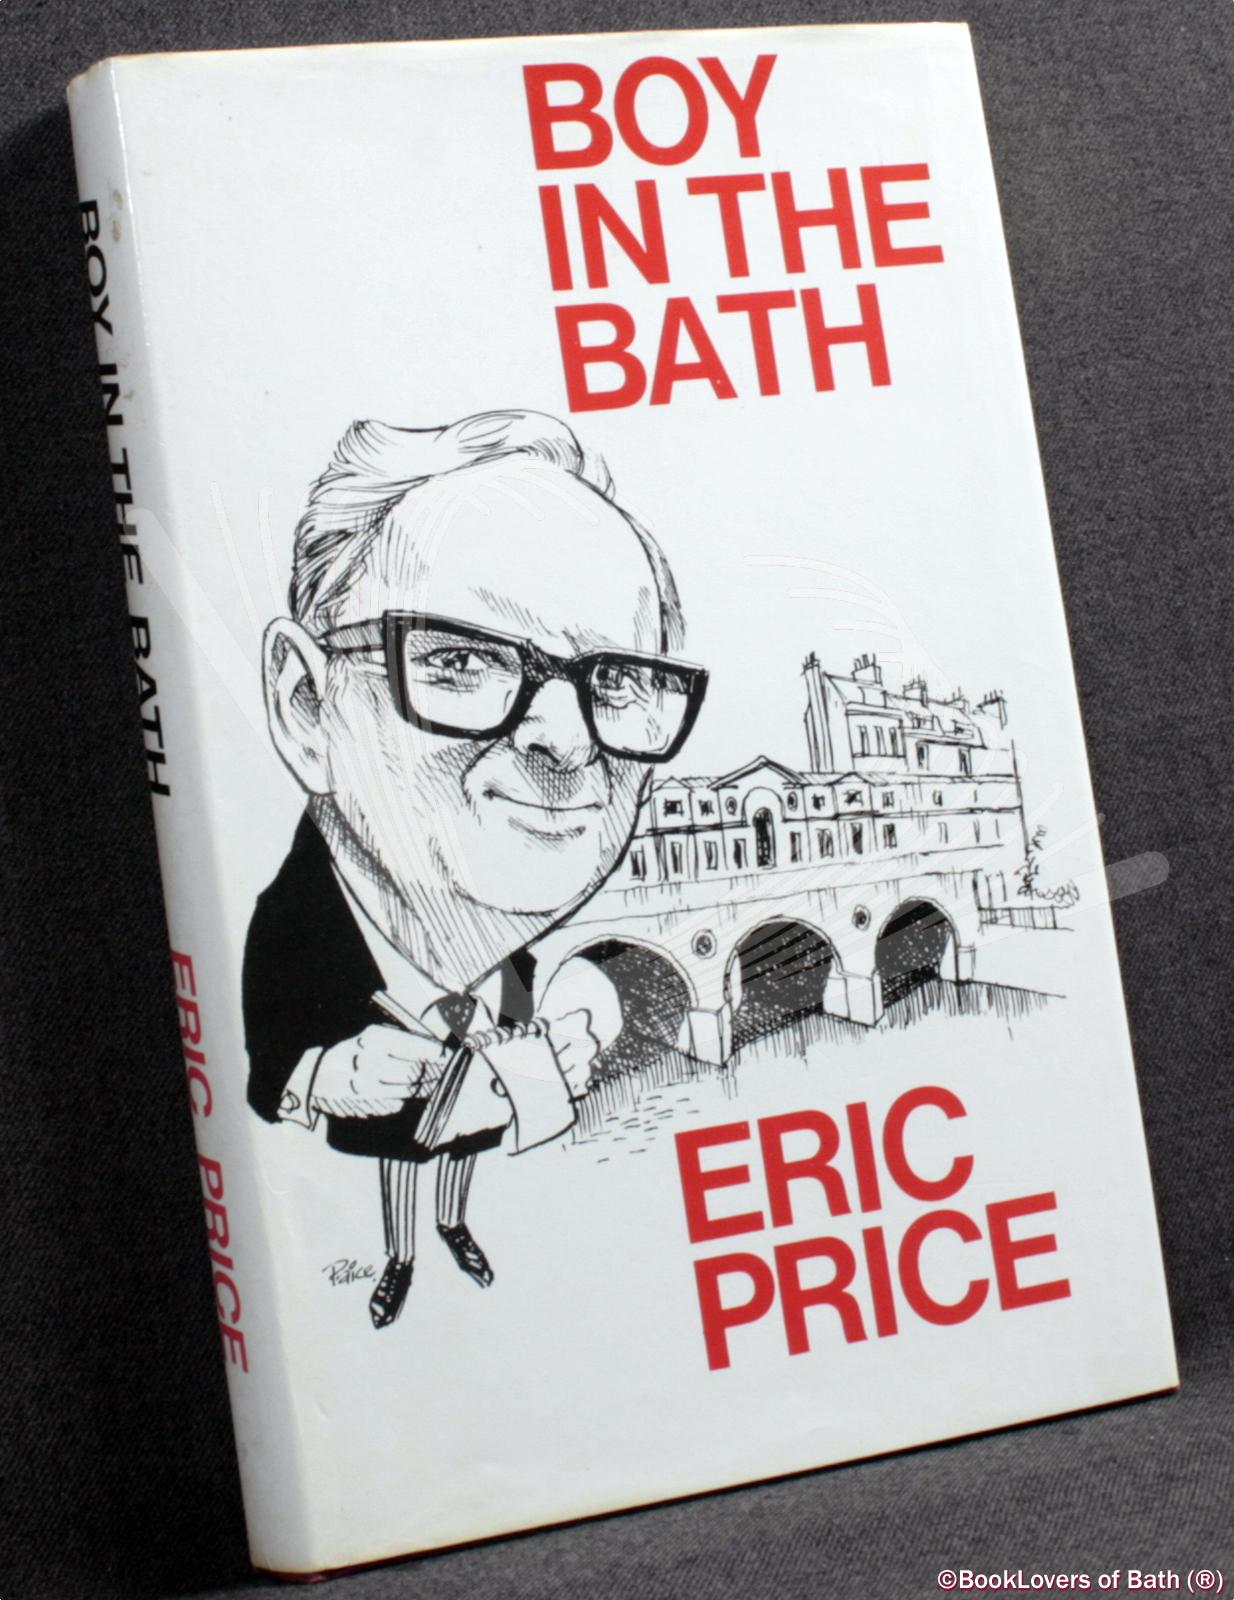 Boy in the Bath: Or How to Work on 13 Newspapers and Survive - Eric Price